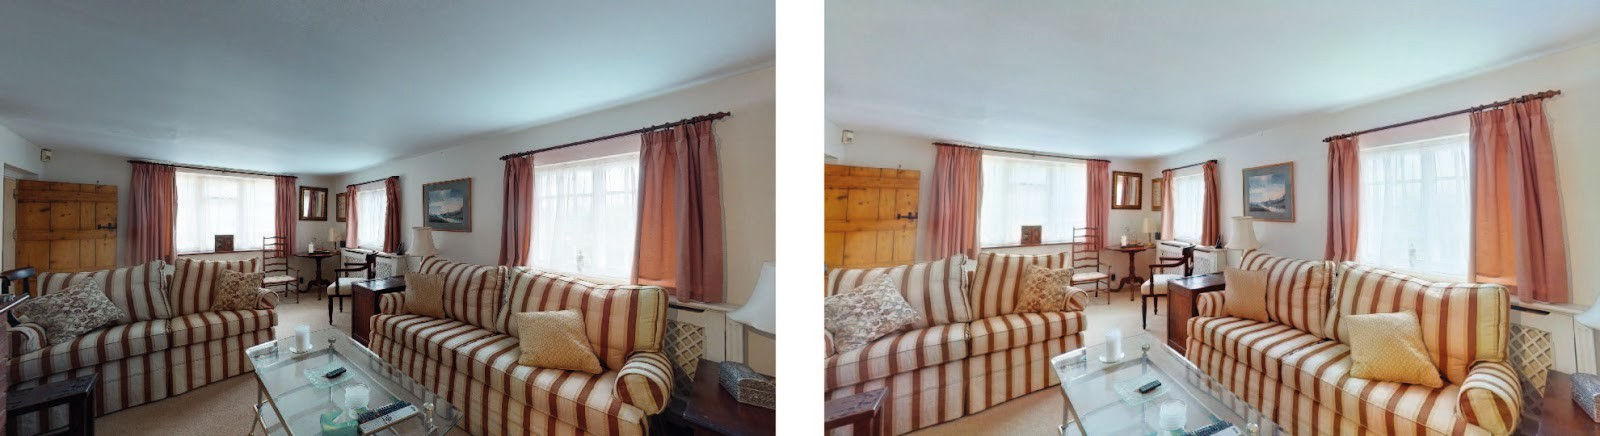 Interior shot: photo before enhancement on the left, and after Autoenhance.ai photo enhancement on the right.